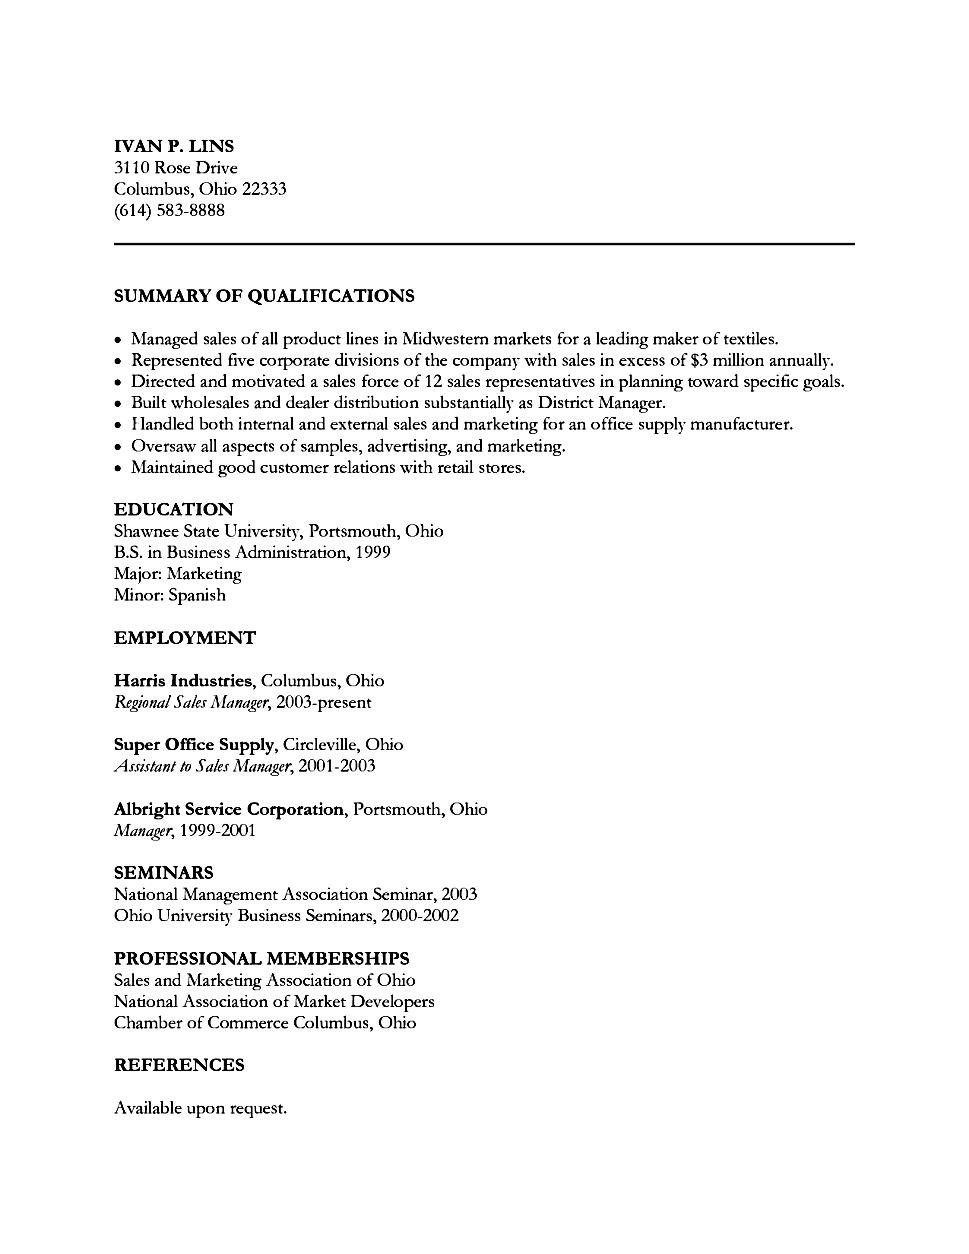 resume of a sales executive